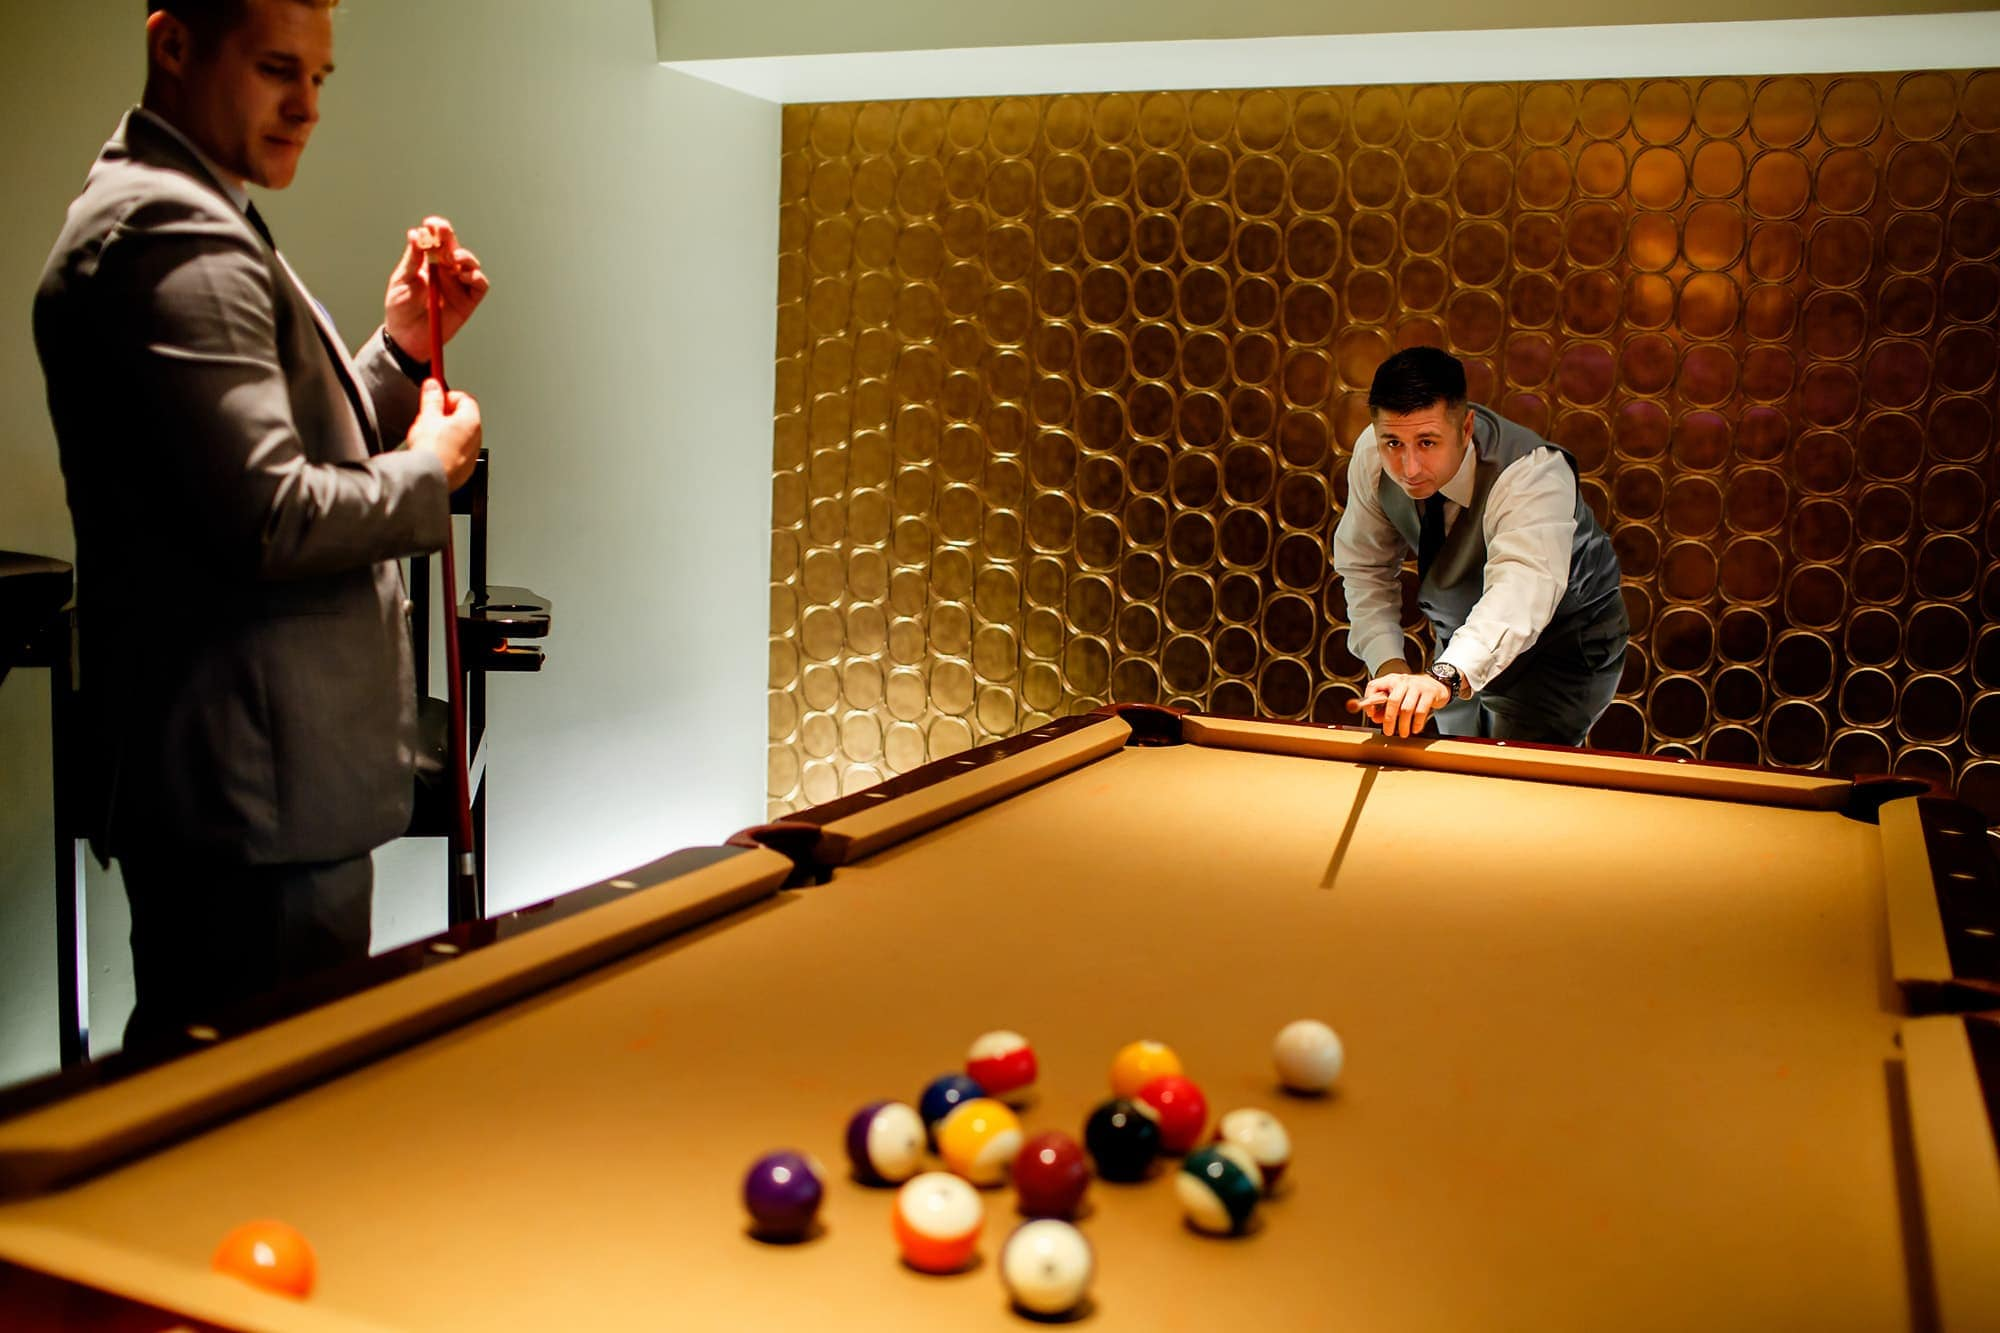 A groom and his groomsmen play pool and billards at Magnolia Hotel in Denver before the wedding